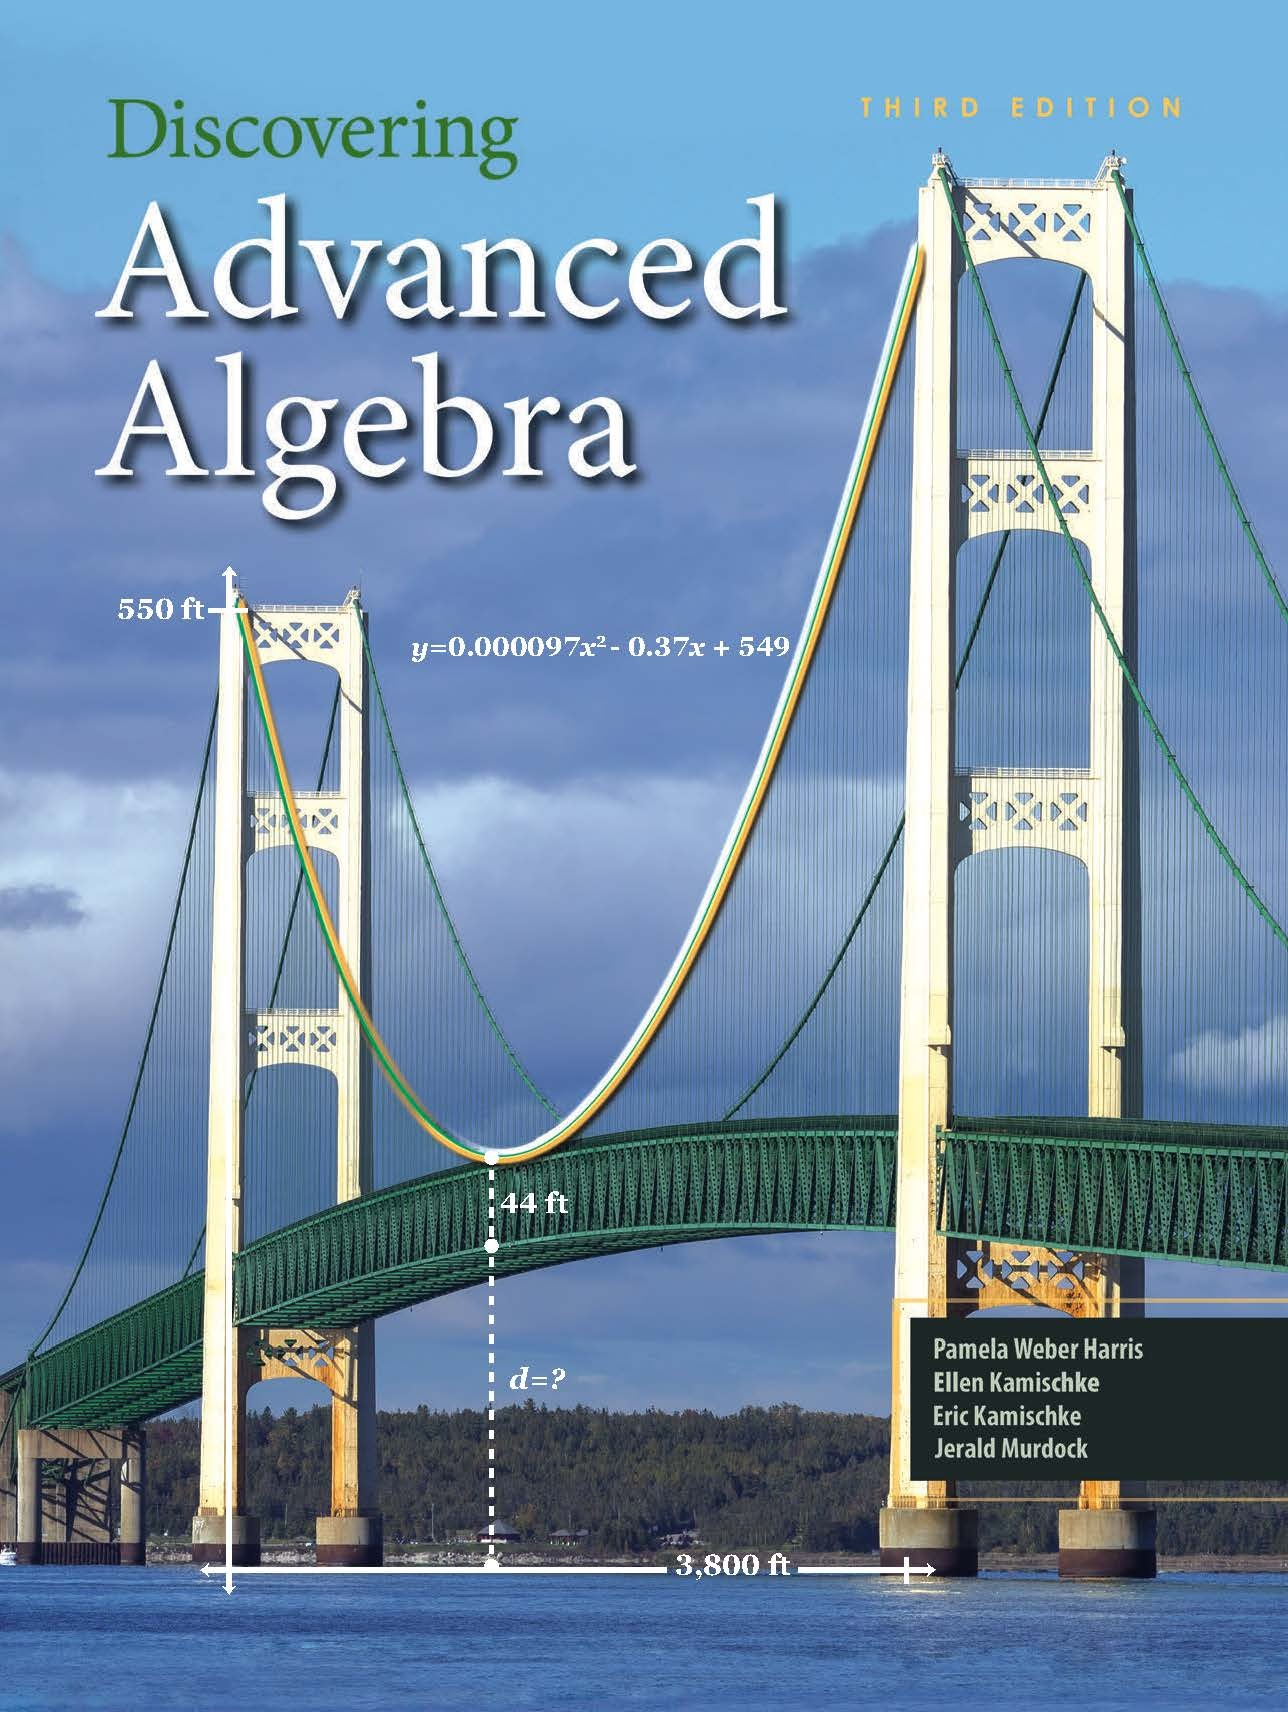 Discovering Advanced Algebra: An Investigative Approach Student Edition 1 Year Online License